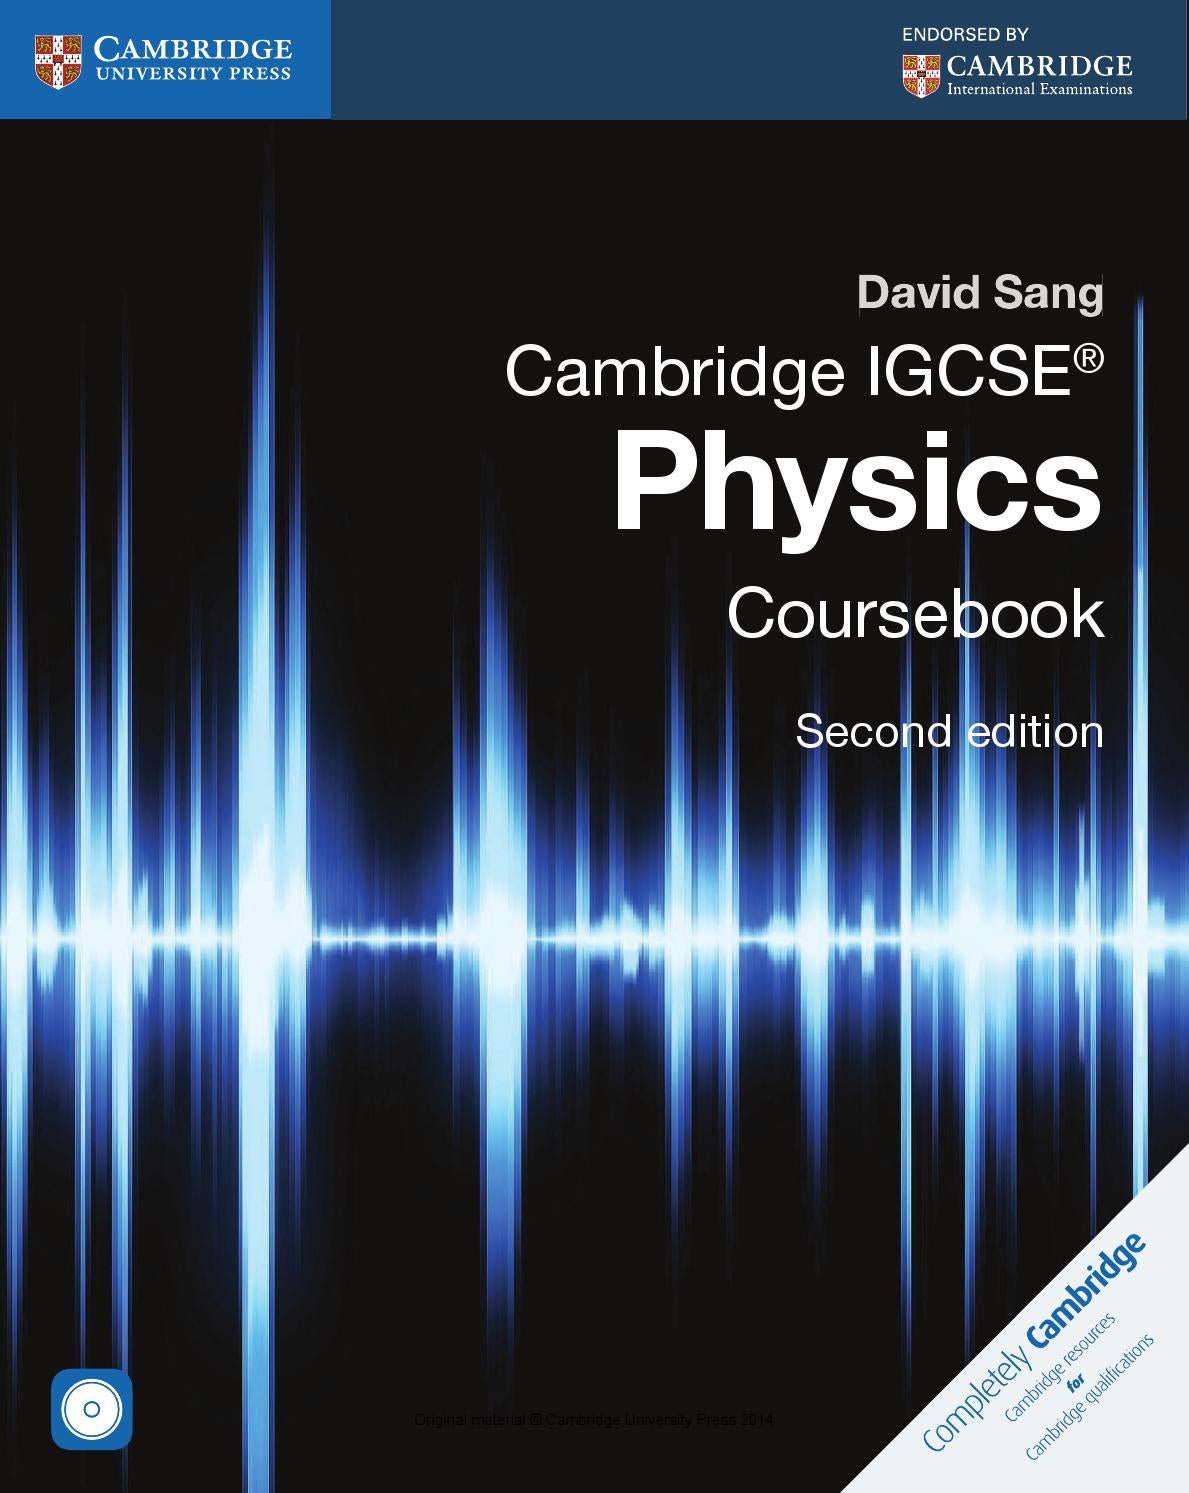 Cambridge igcse physics coursebook second edition by cambridge cambridge igcse physics coursebook second edition by cambridge university press education issuu fandeluxe Image collections